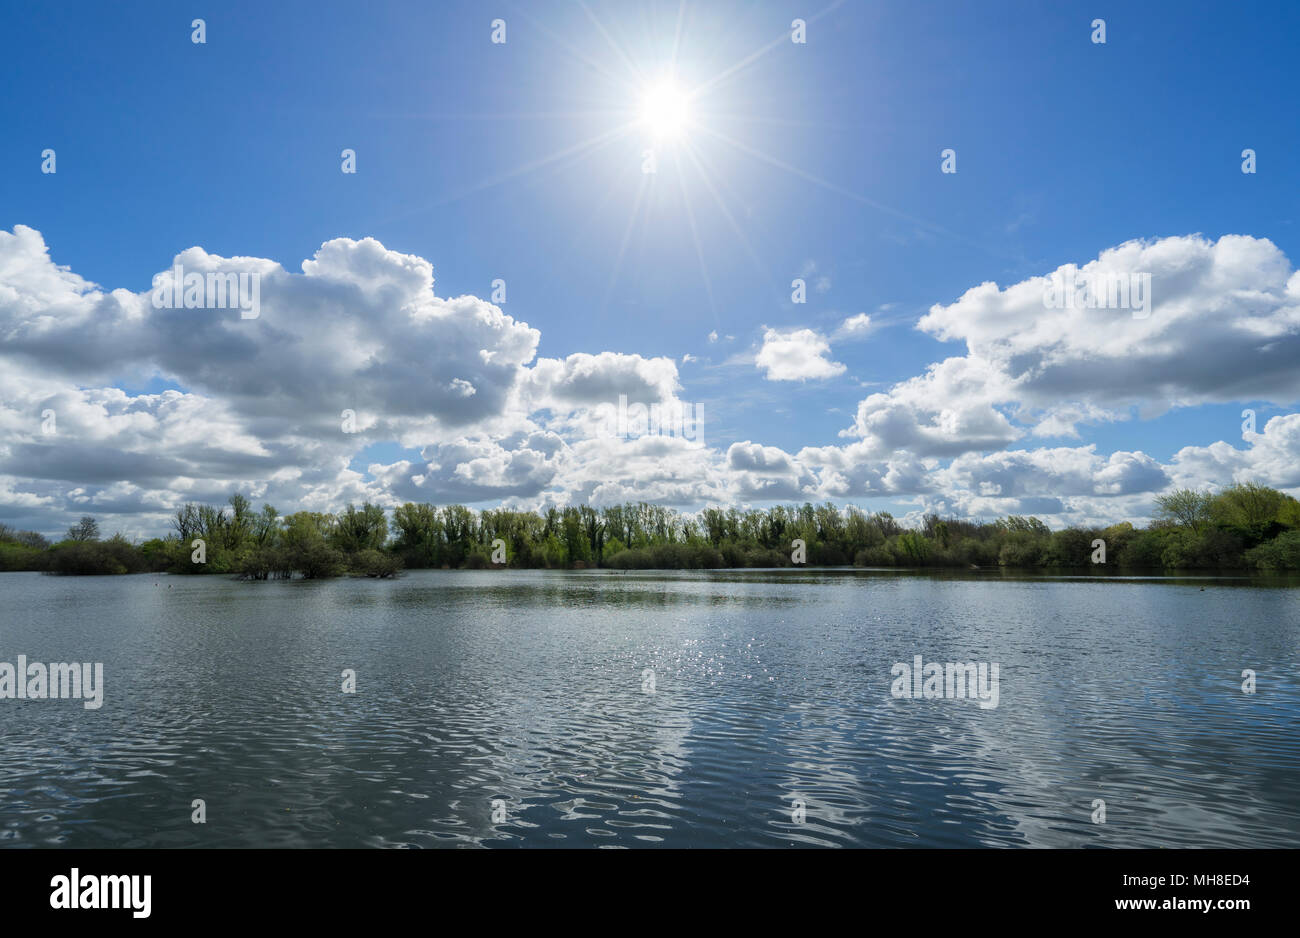 sun-and-sky-over-lake-milton-country-par